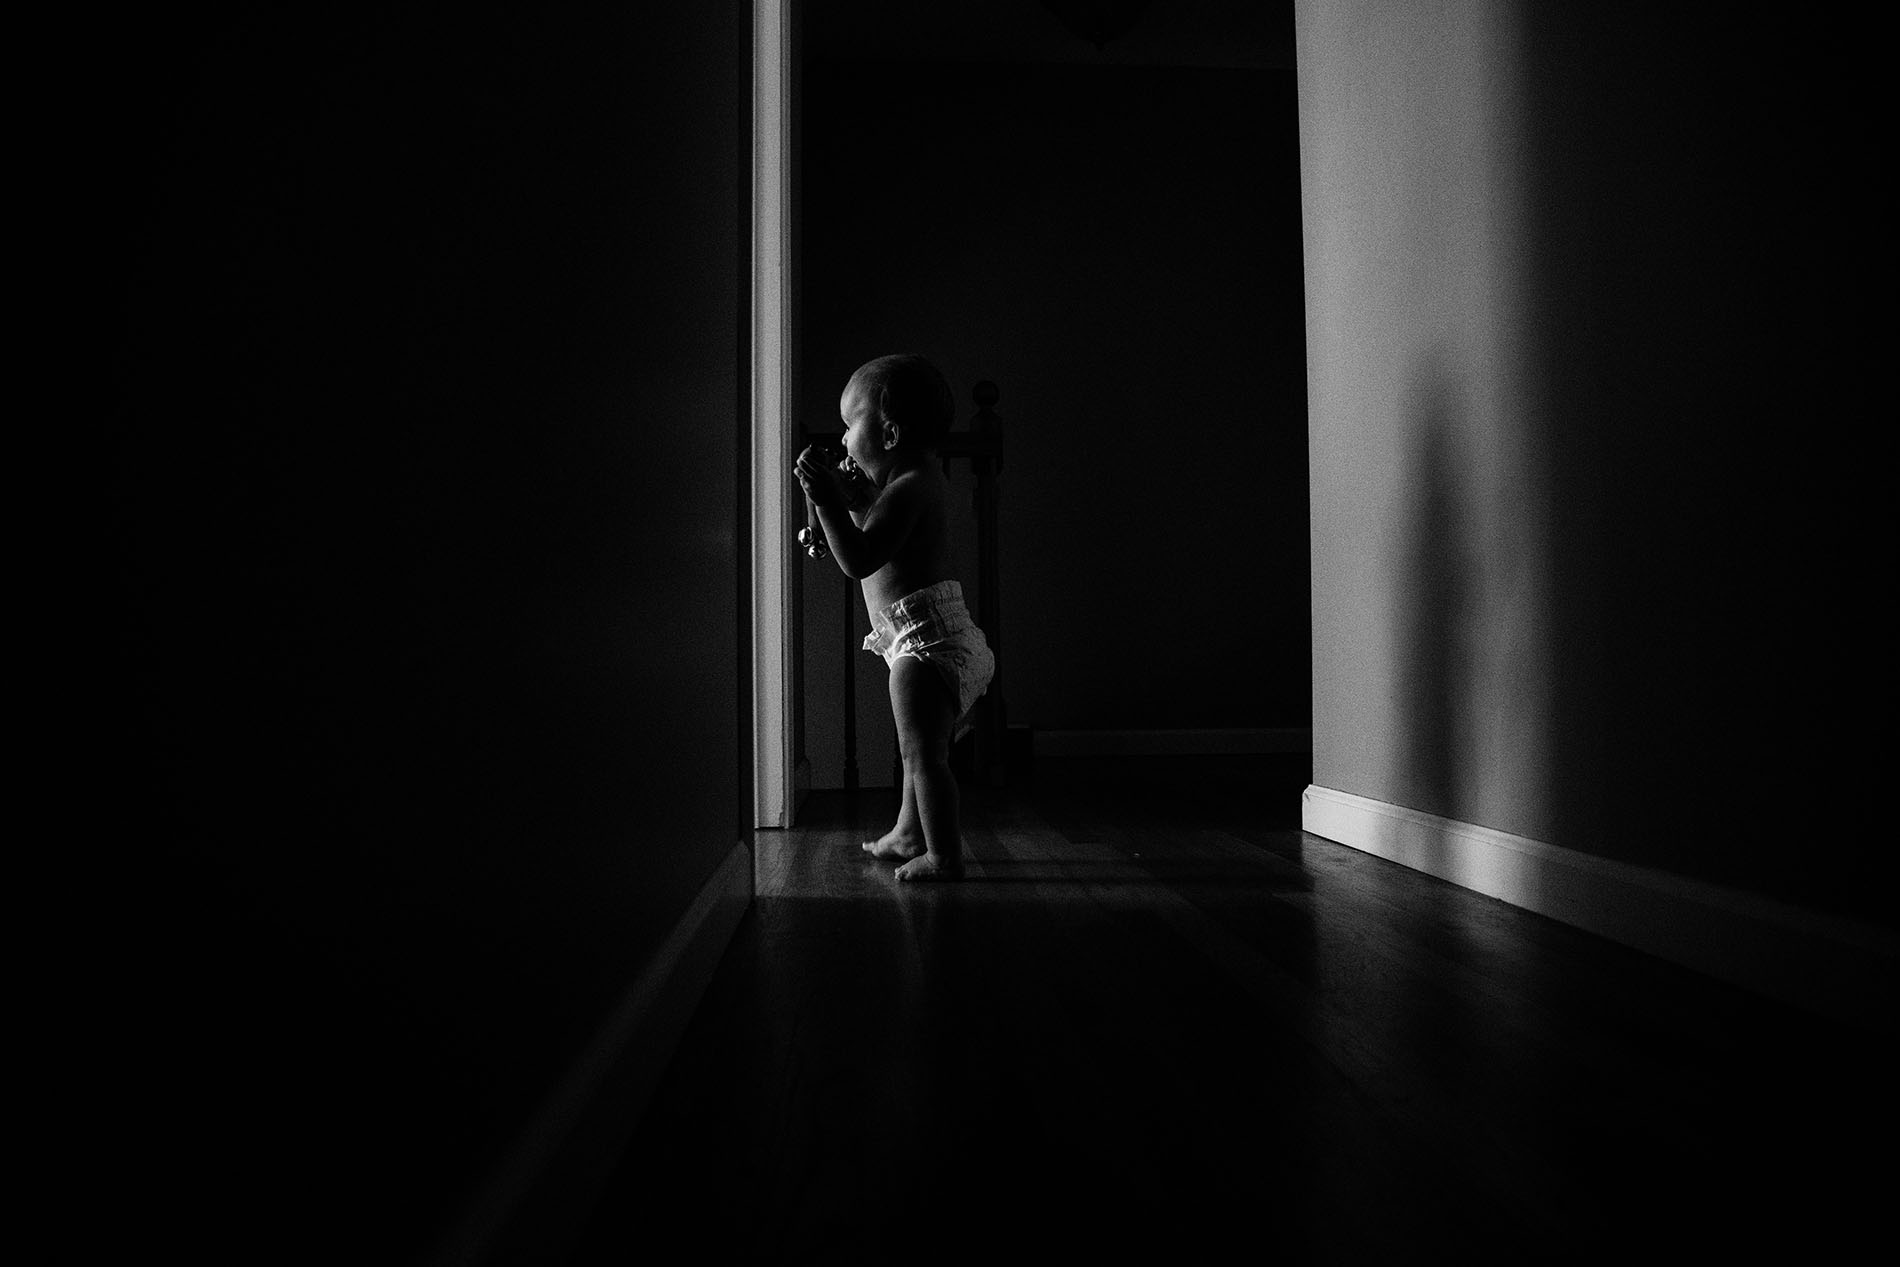 photo of kid walking down hallway by Jessica Svoboda